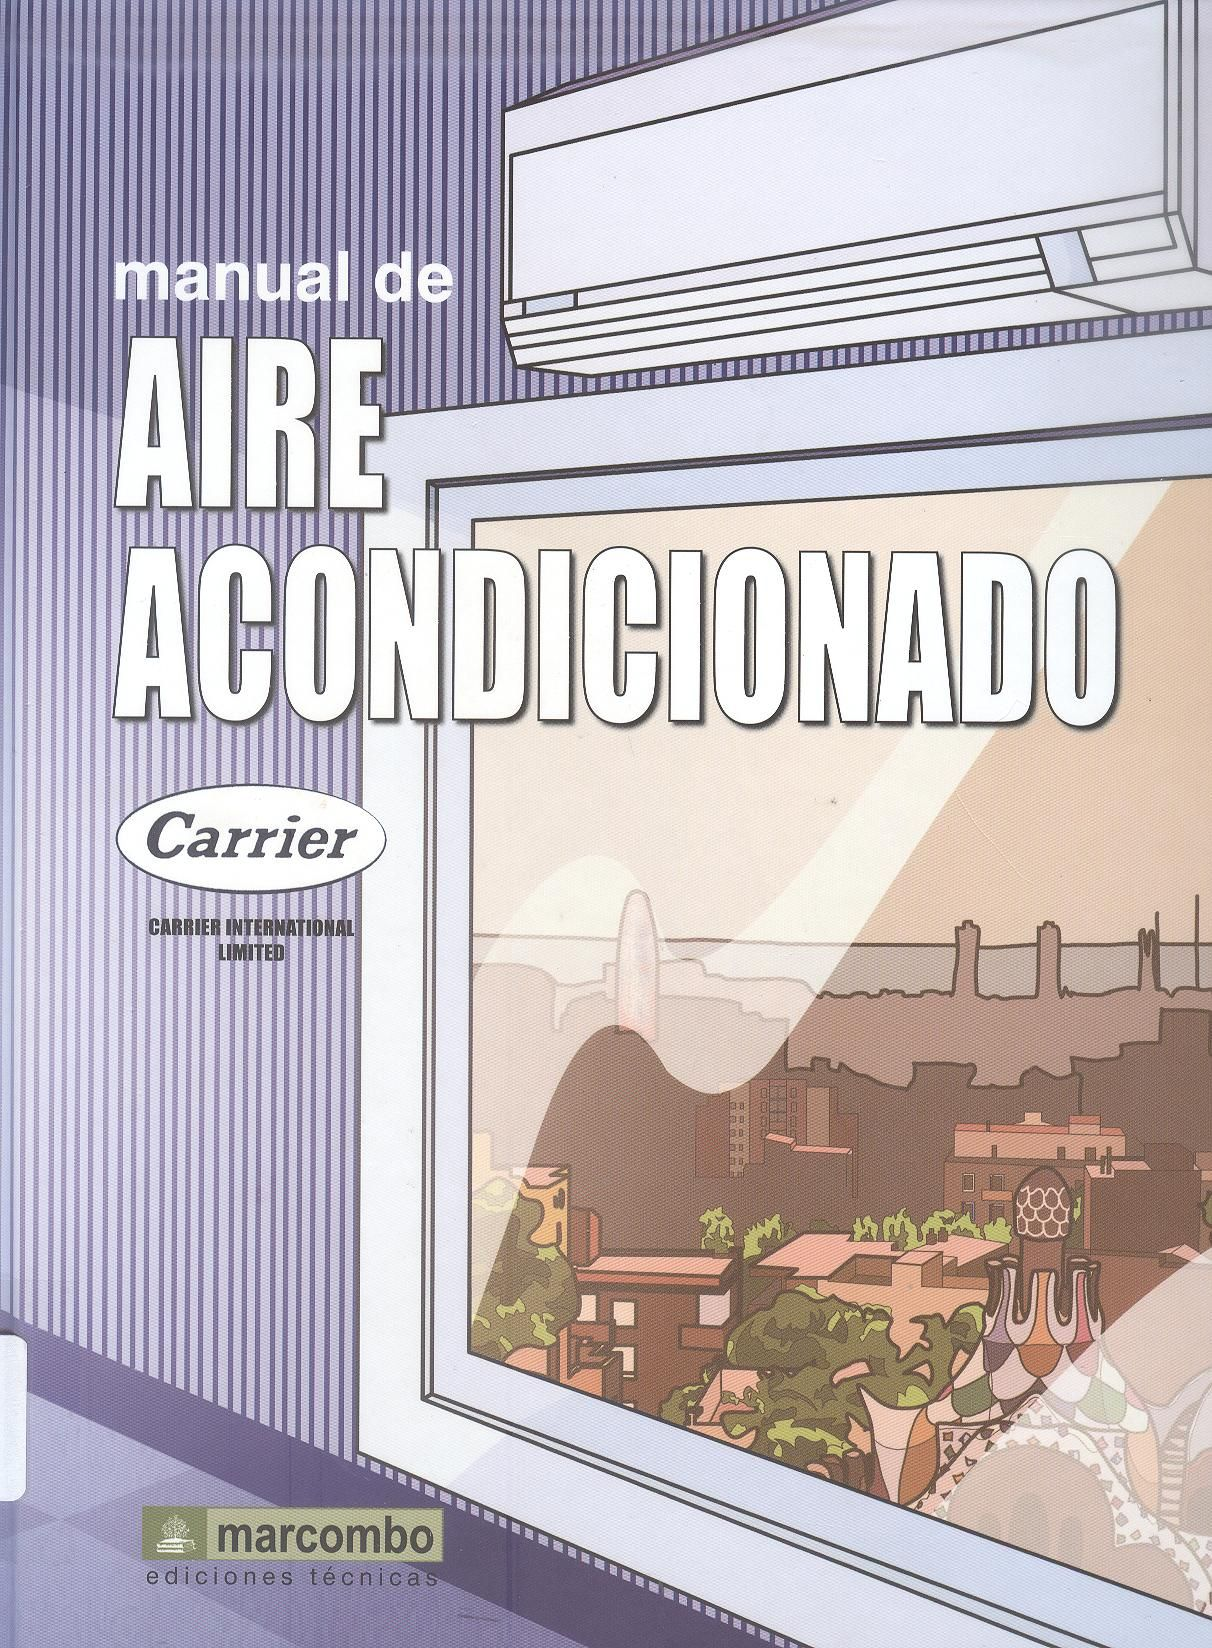 Carrier Air Conditioning Company Manual de aire acondicionado